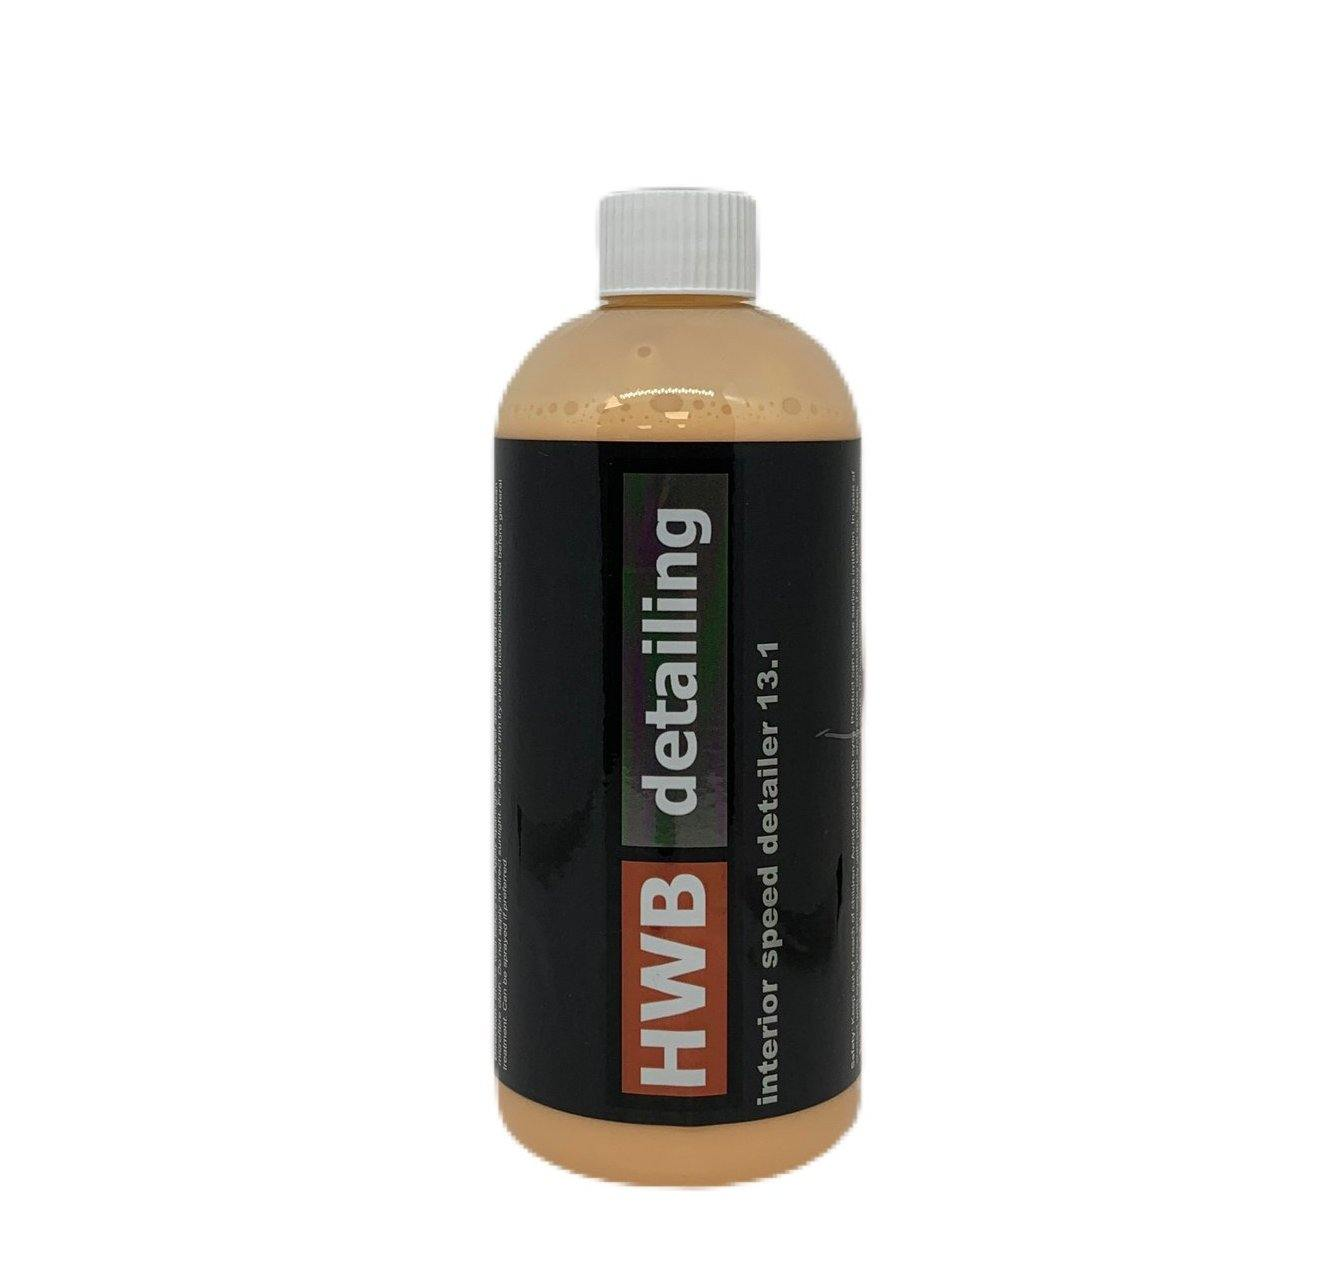 13.1 HWB Detailing Interior Speed Detailer - HWB Car Parts